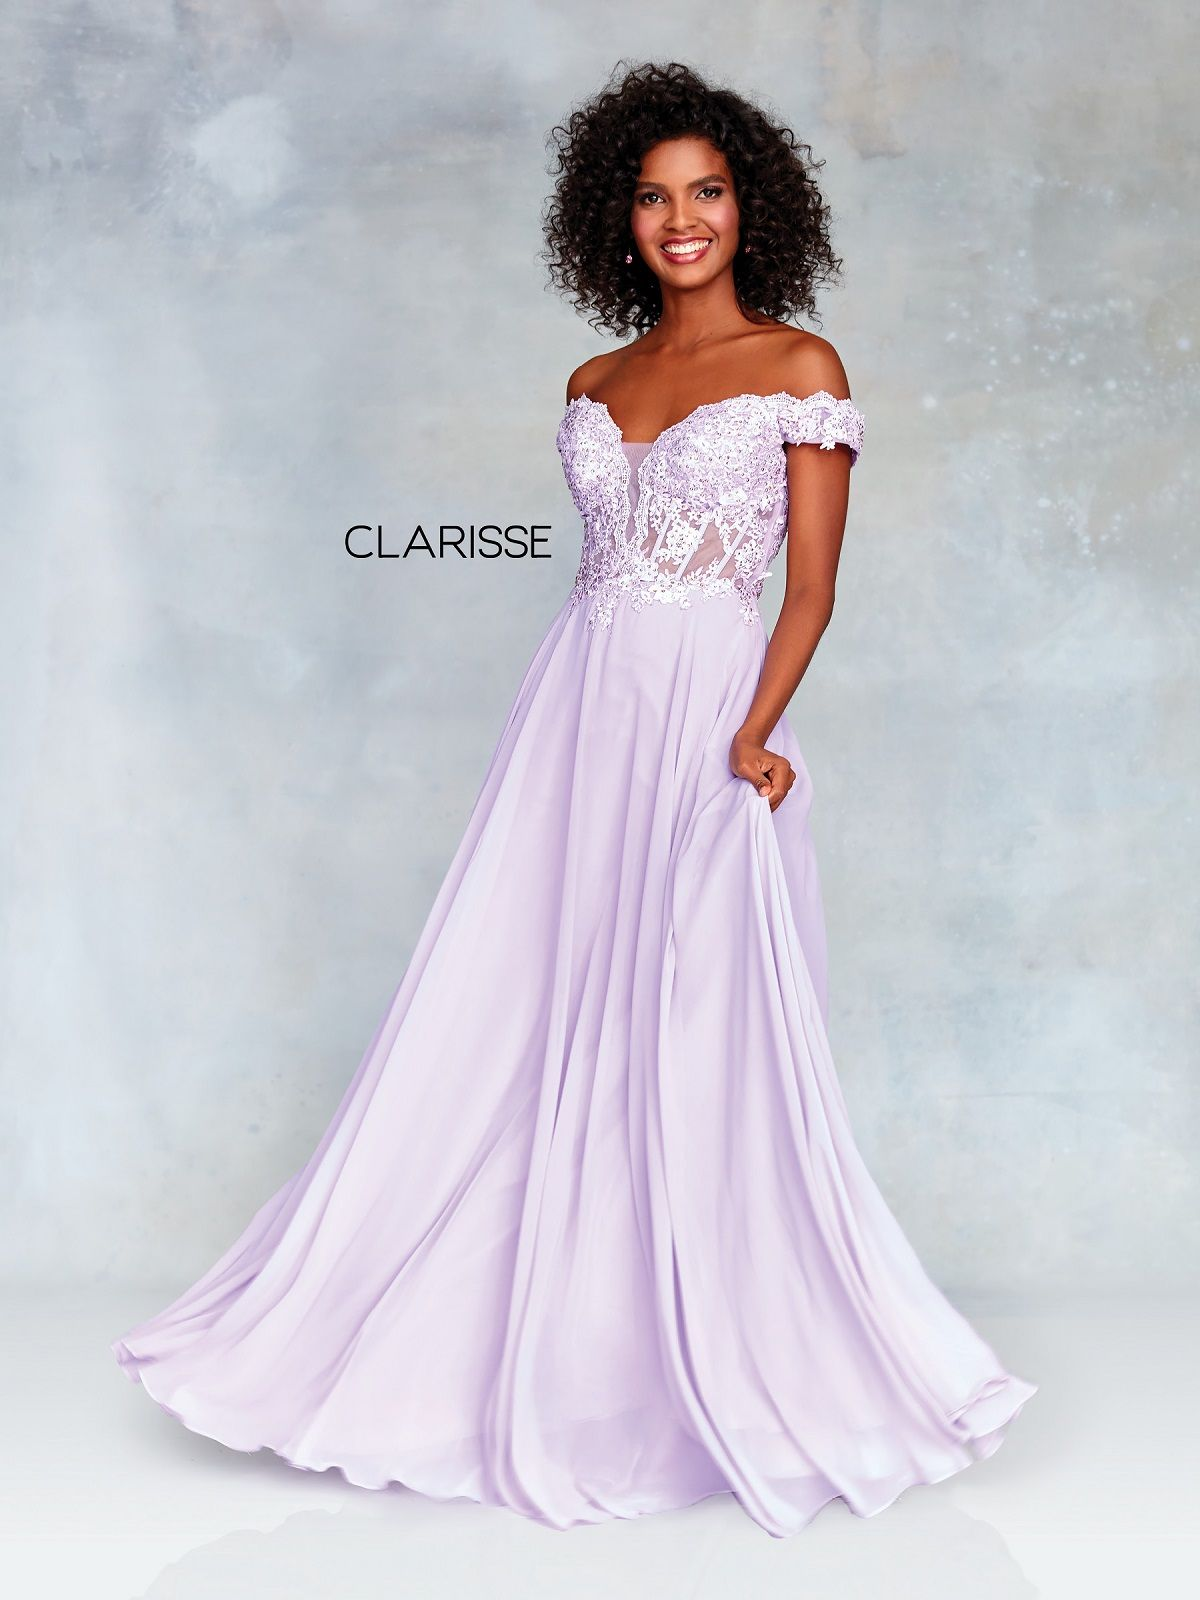 Clarisse Dress 3774 Lace and Chiffon Ball Gown | 5 Colors ...